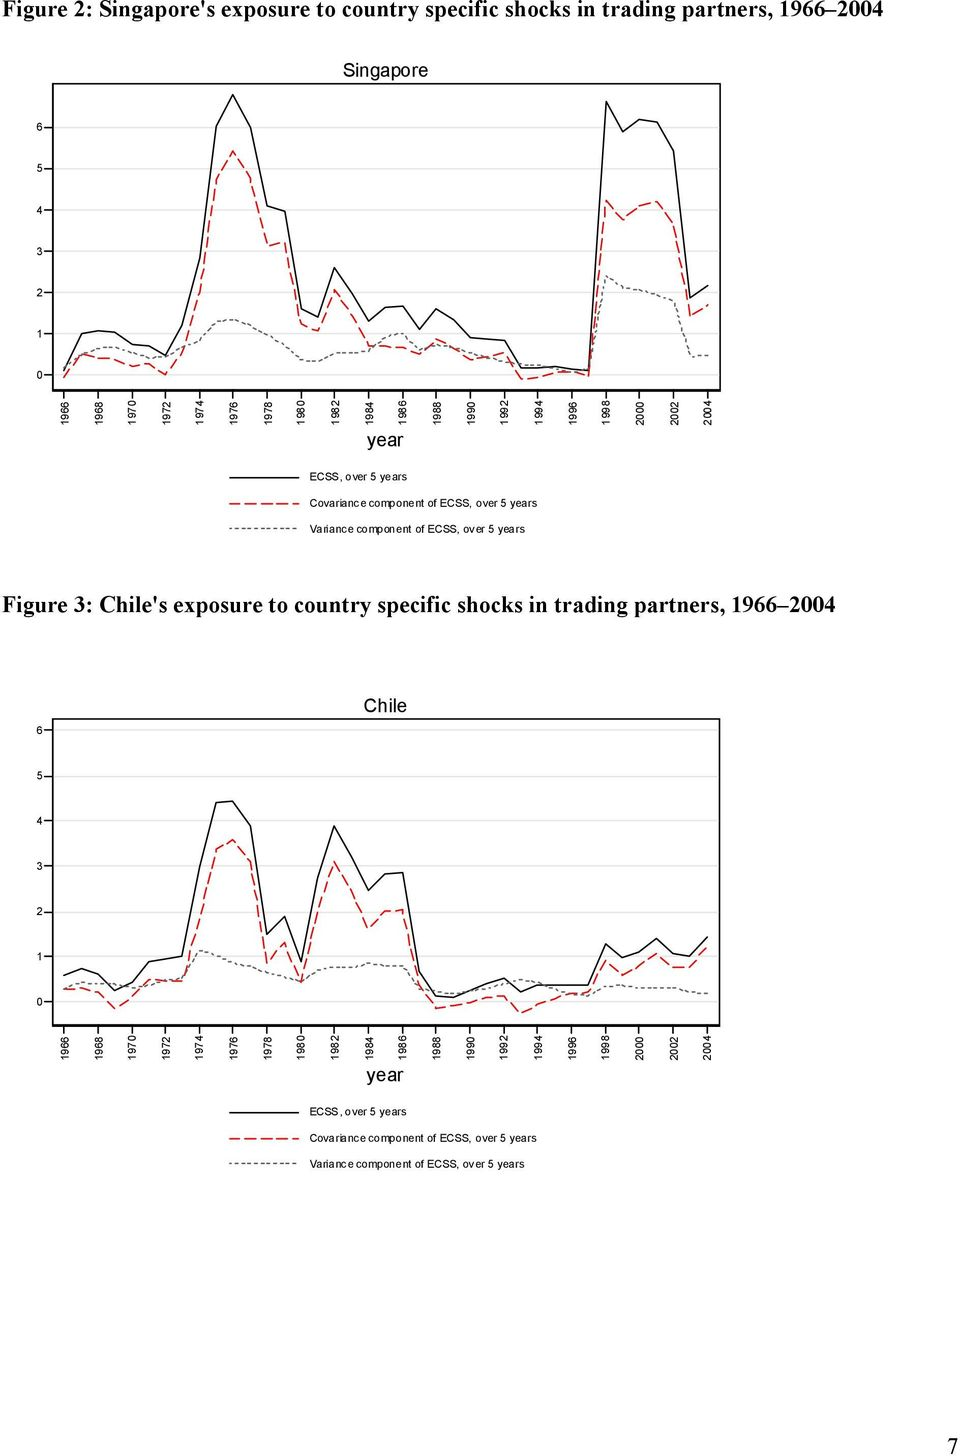 years Figure 3: Chile's exposure to country specific shocks in trading partners, 1966 2004 6 Chile 5 4 3 2 1 0 1966 1968 1970 1972 1974 1976 1978 1980 1982